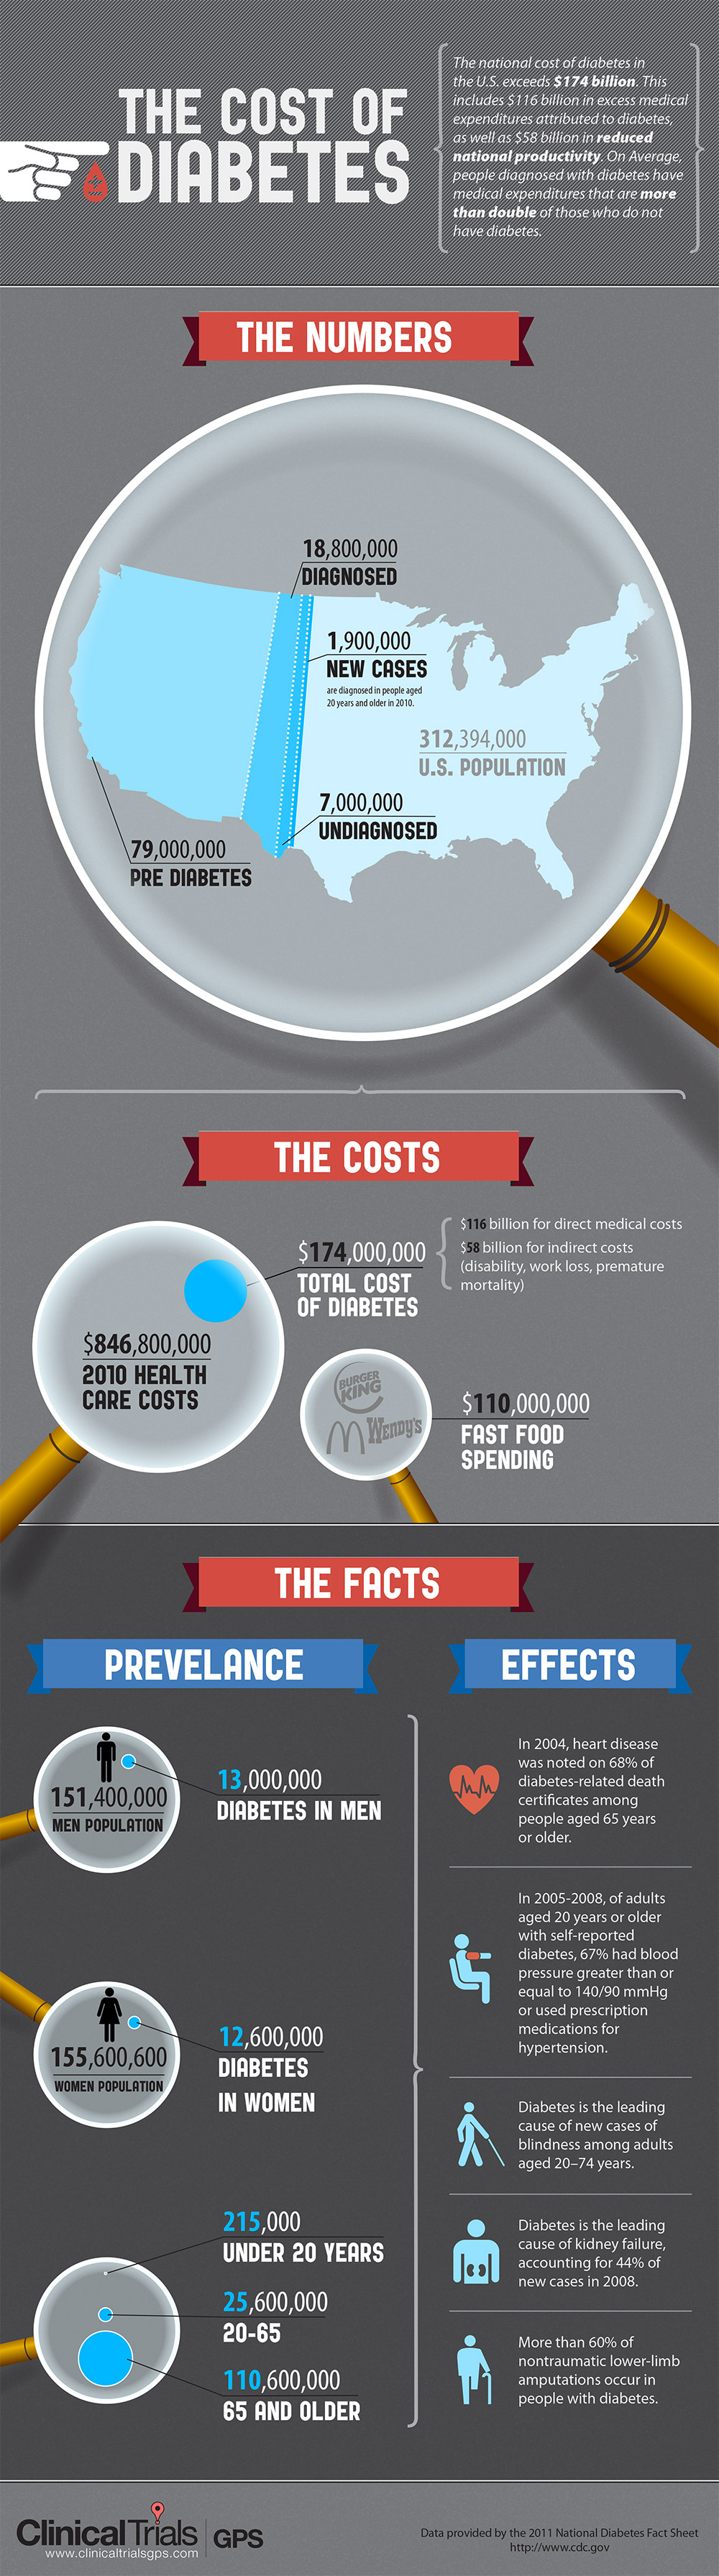 the-rising-cost-of-diabetes_50ad276d995f8